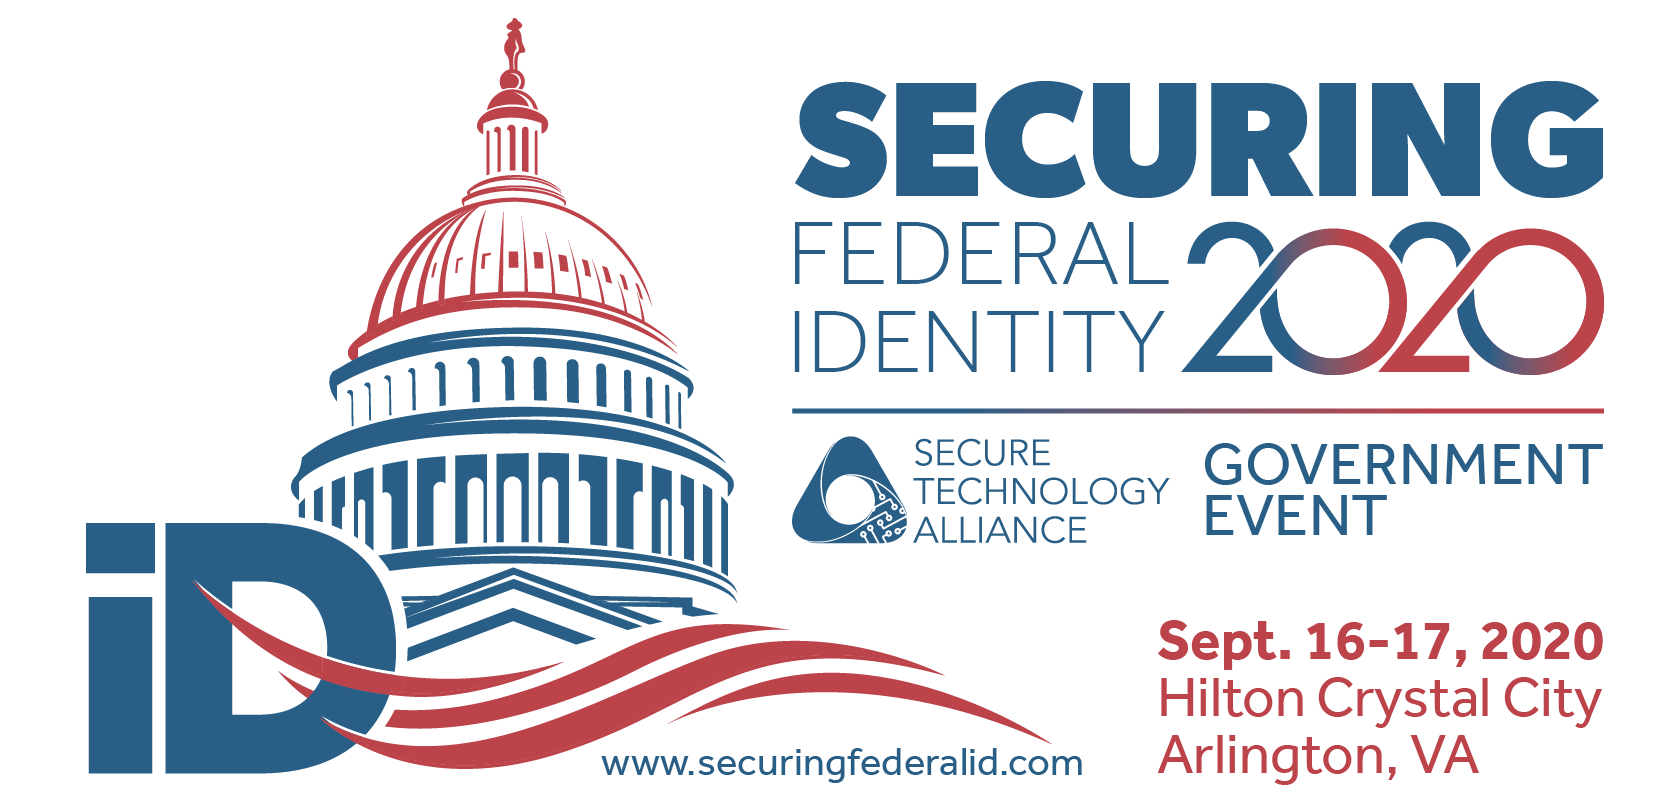 Securing Federal Identity 2020